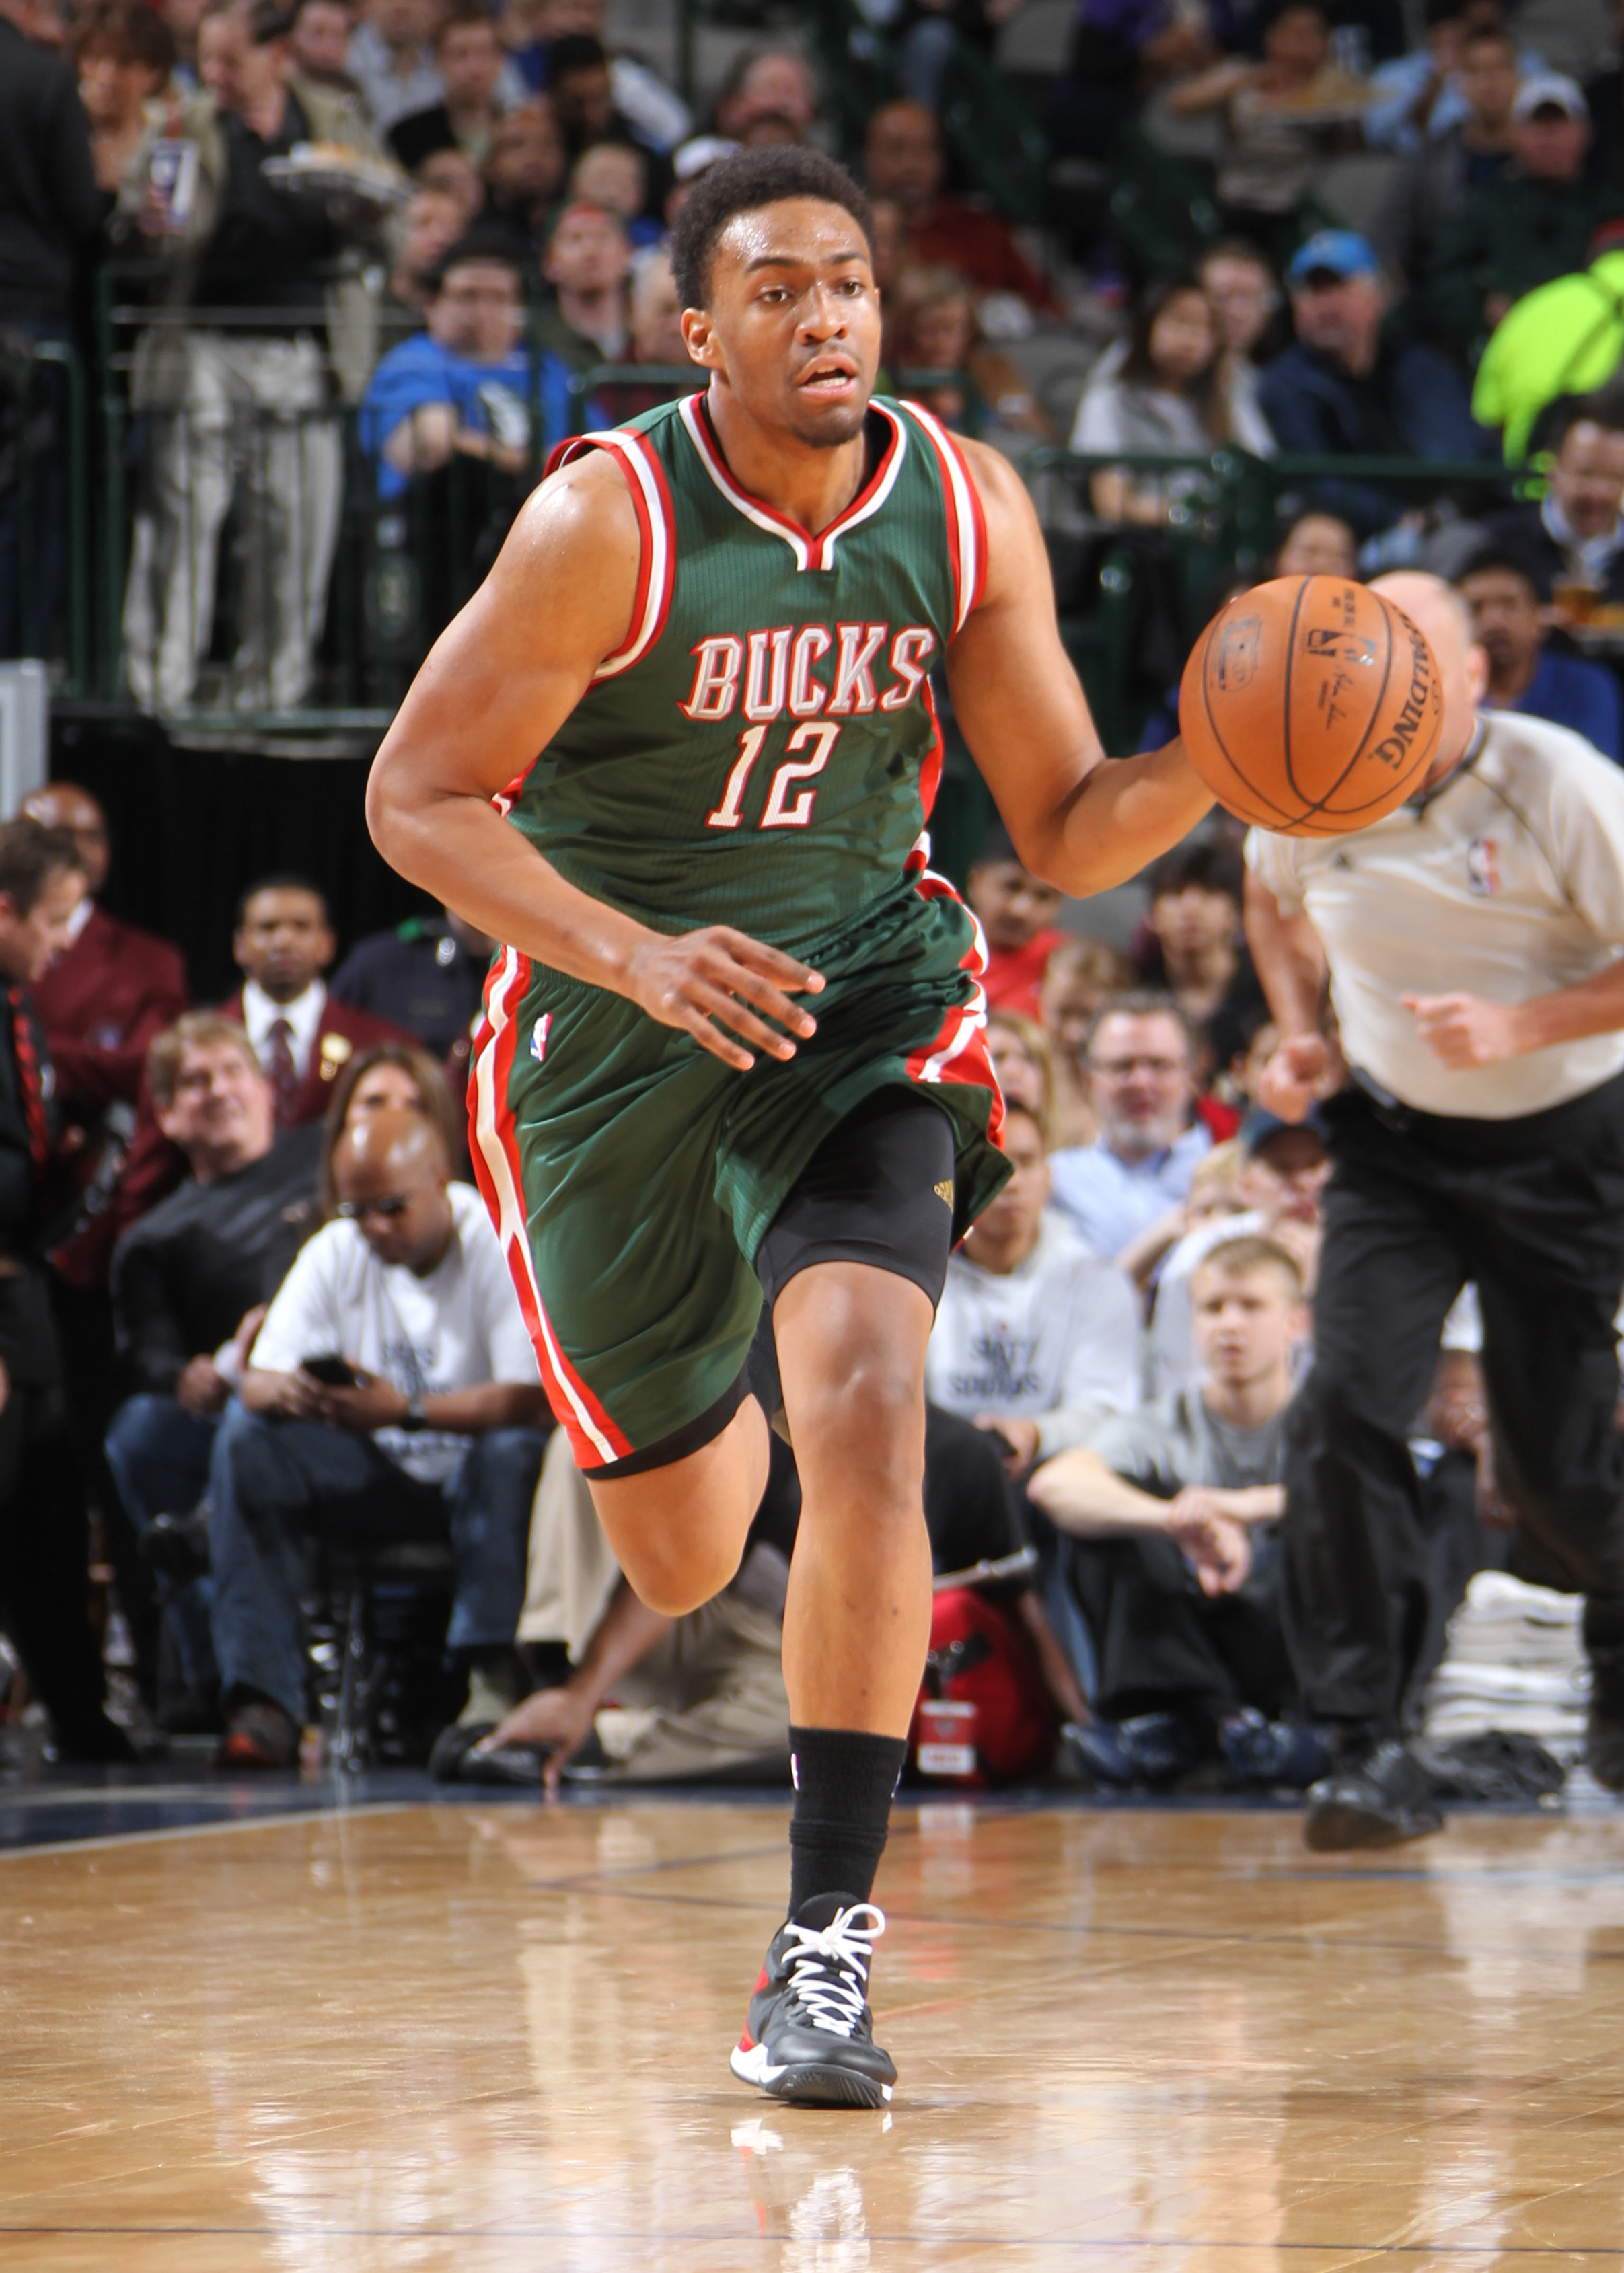 DALLAS, TX - DECEMBER 7: Jabari Parker #12 of the Milwaukee Bucks handles the ball against the Dallas Mavericks on December 7, 2014 at the American Airlines Center in Dallas, Texas. (Photo by Danny Bollinger/NBAE via Getty Images)